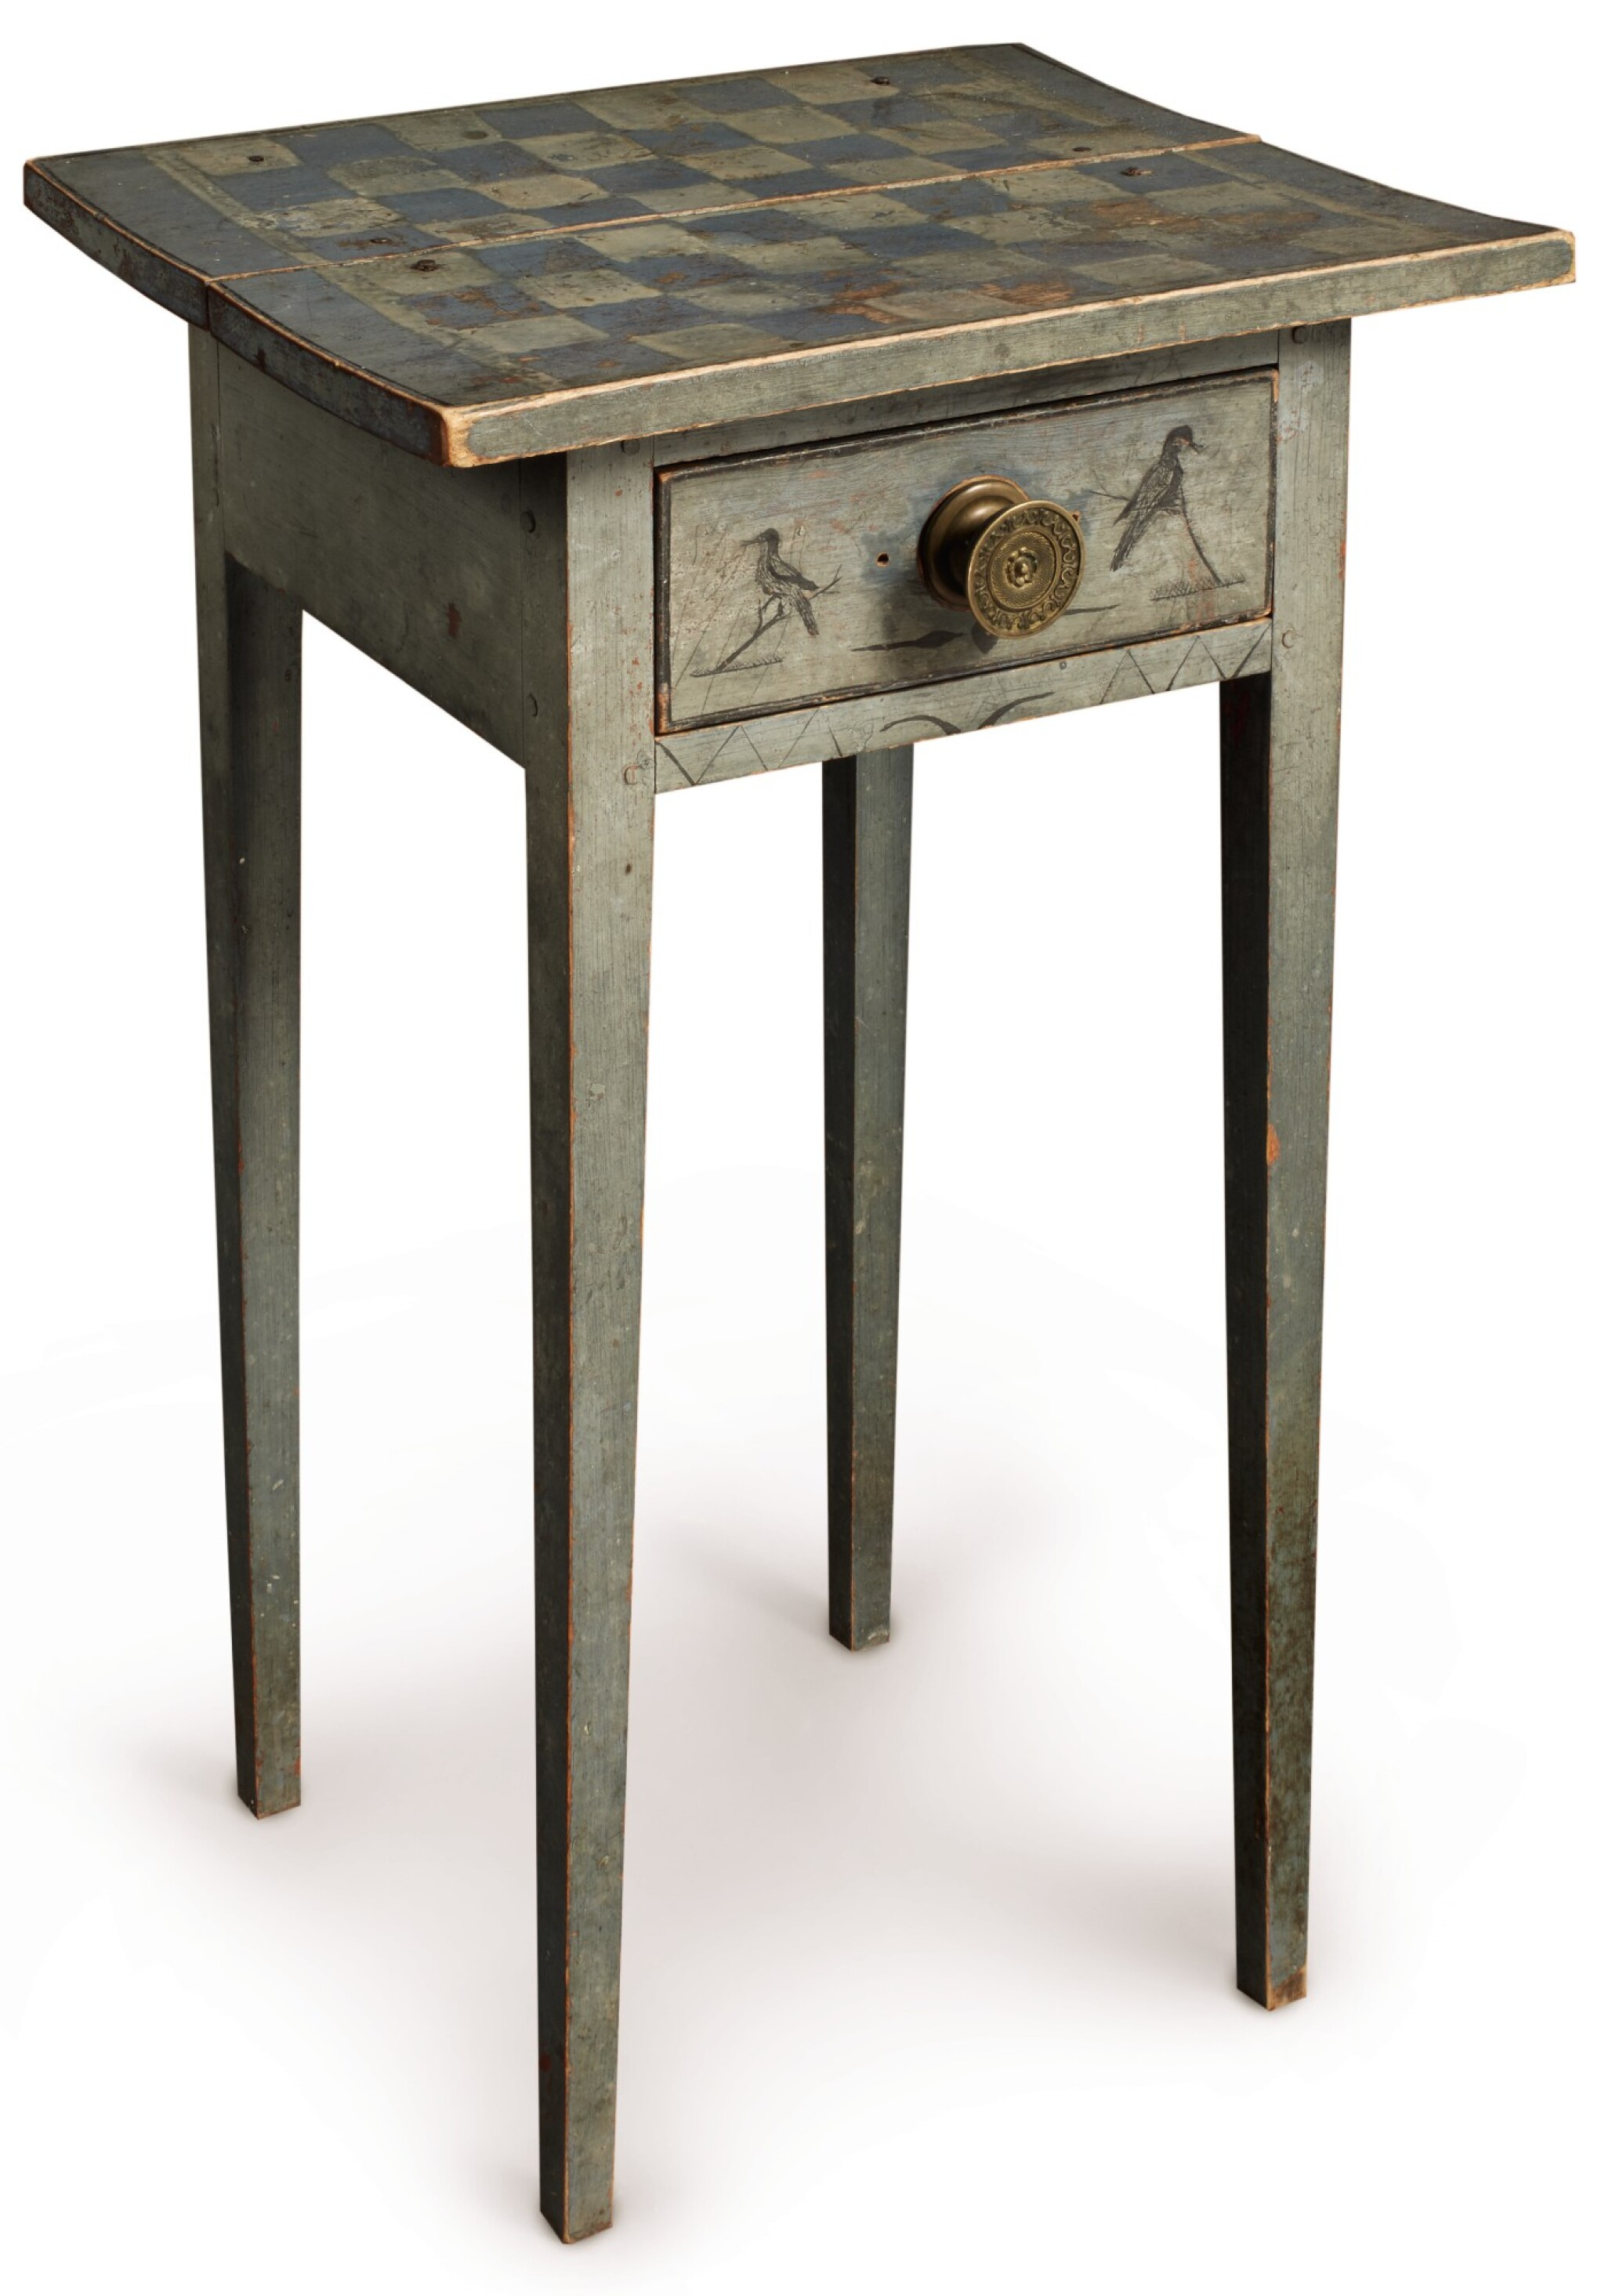 View full screen - View 1 of Lot 1438. VERY FINE FEDERAL BLUE PAINT-DECORATED PINE ONE-DRAWER STAND, NEW ENGLAND, CIRCA 1820.